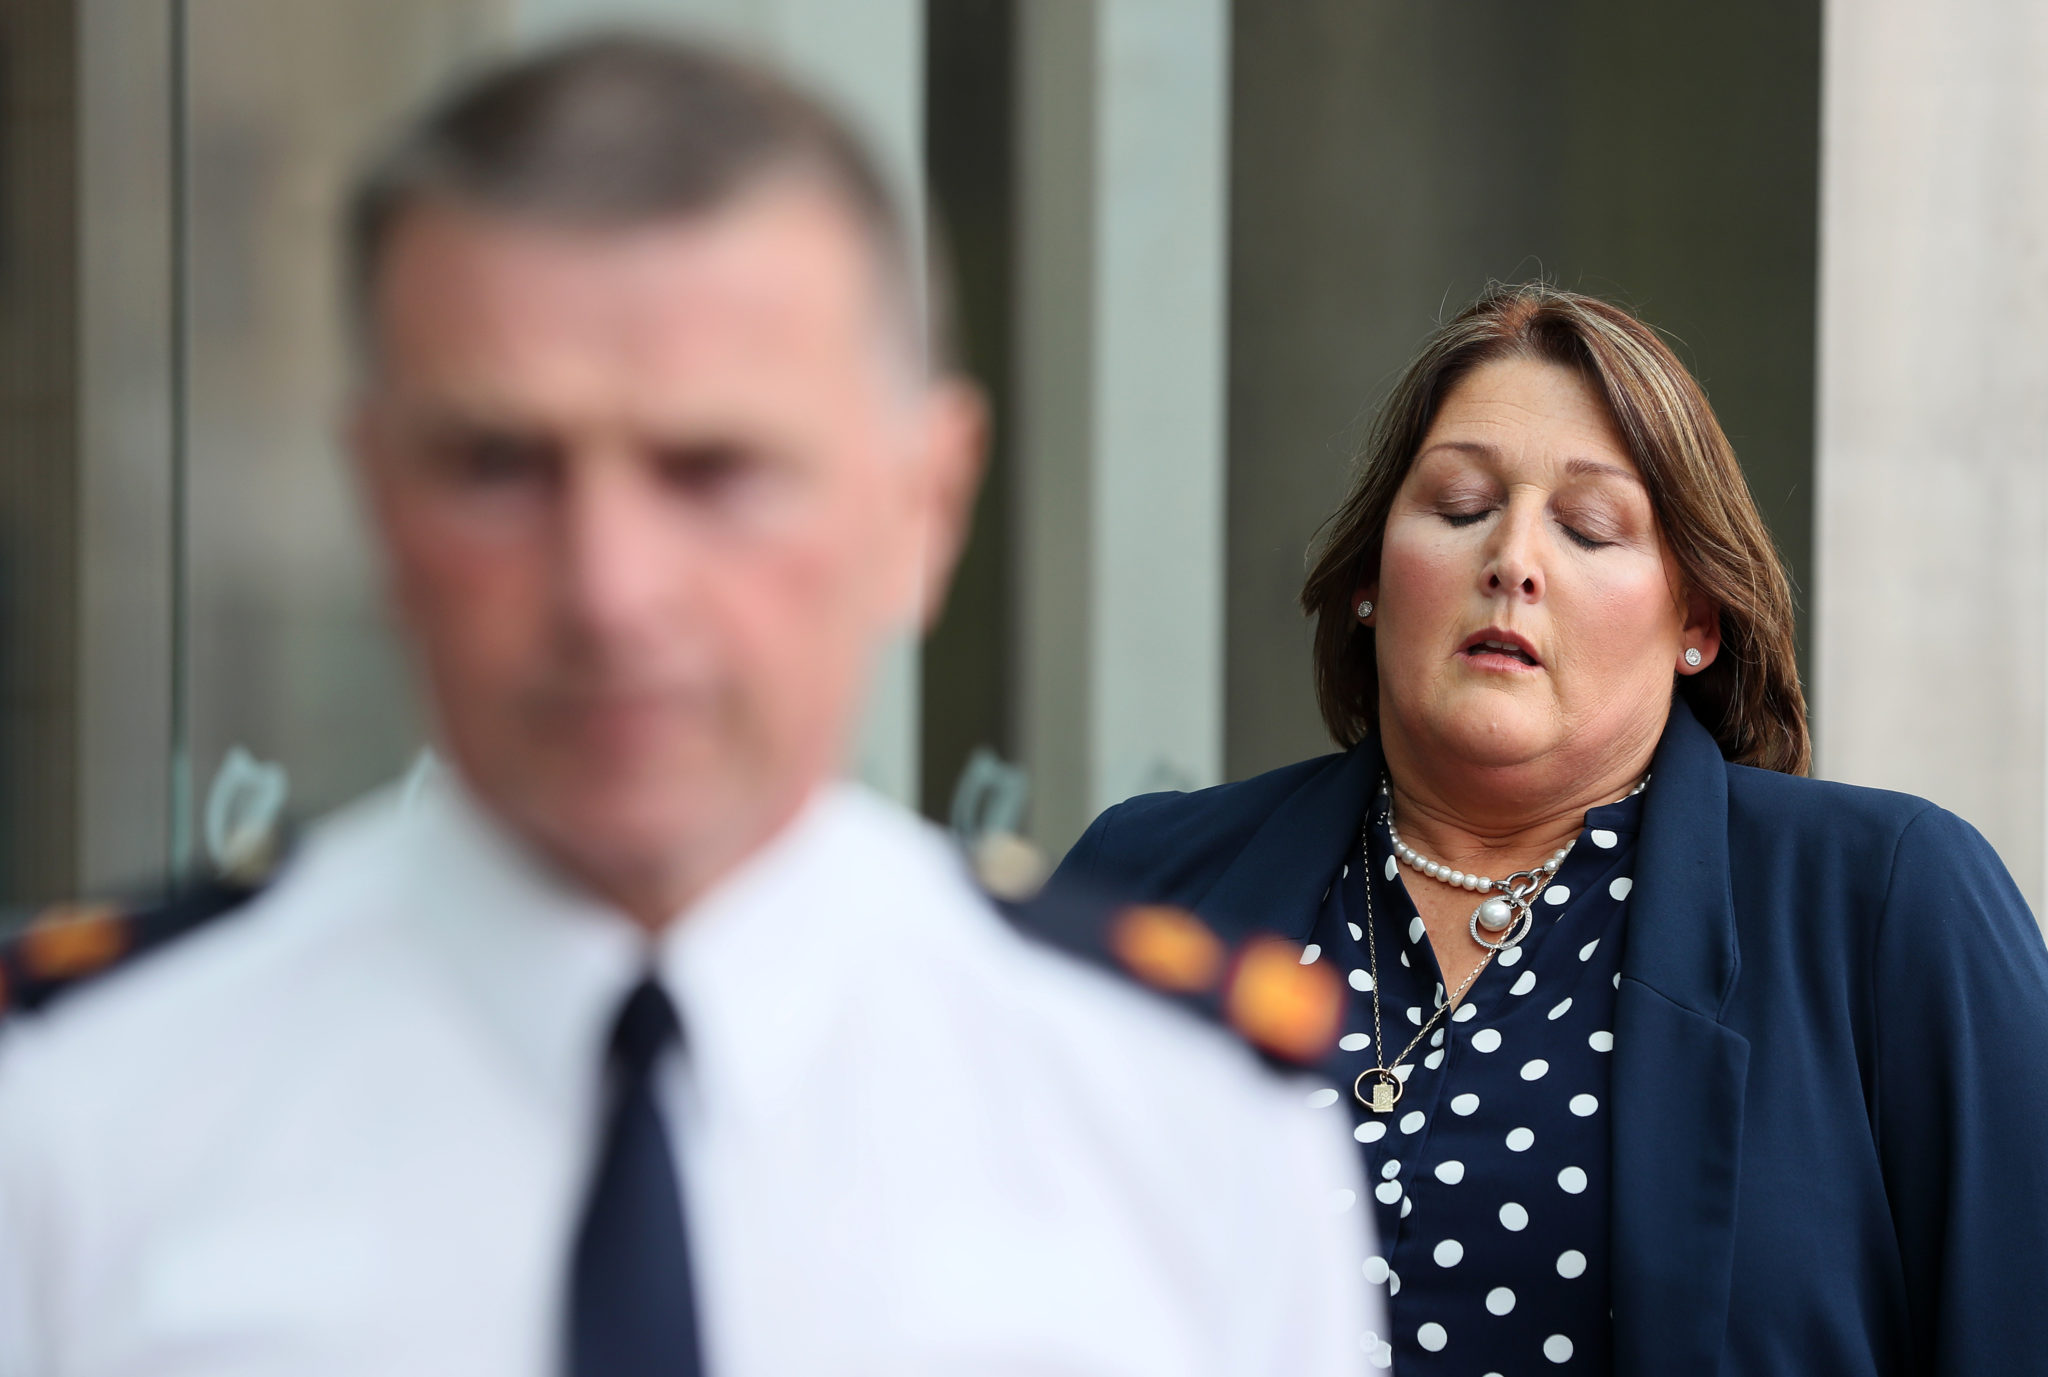 Adrian Donohoe's widow Caroline Donohoe prepares to speak outside the Criminal Courts of Justice